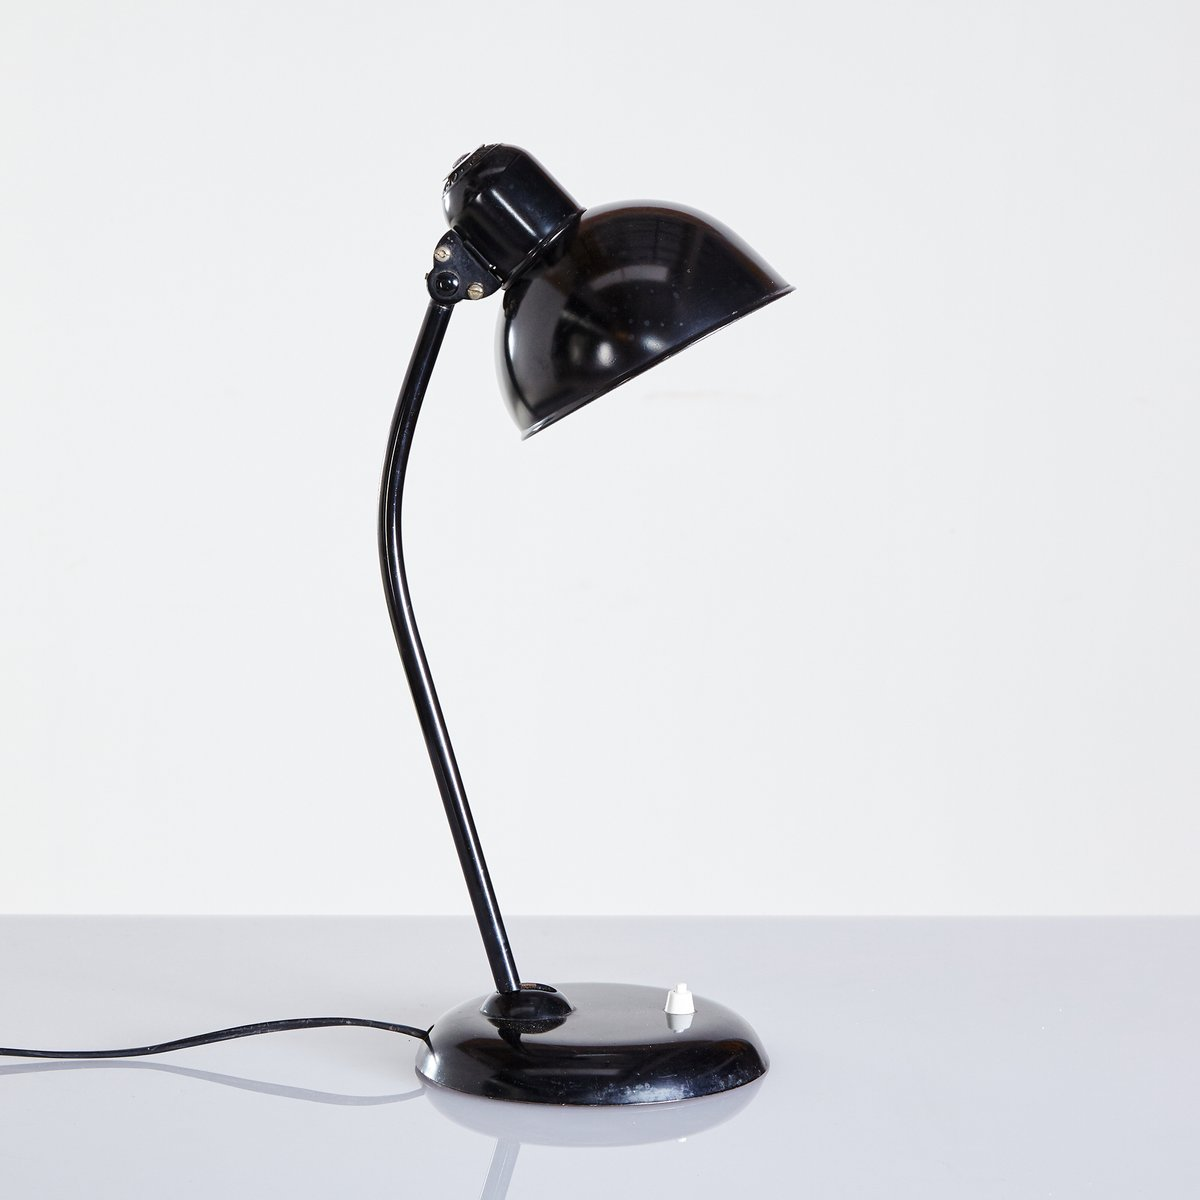 Vintage Industrial Table Lamp By Christian Dell For Kaiser Idell